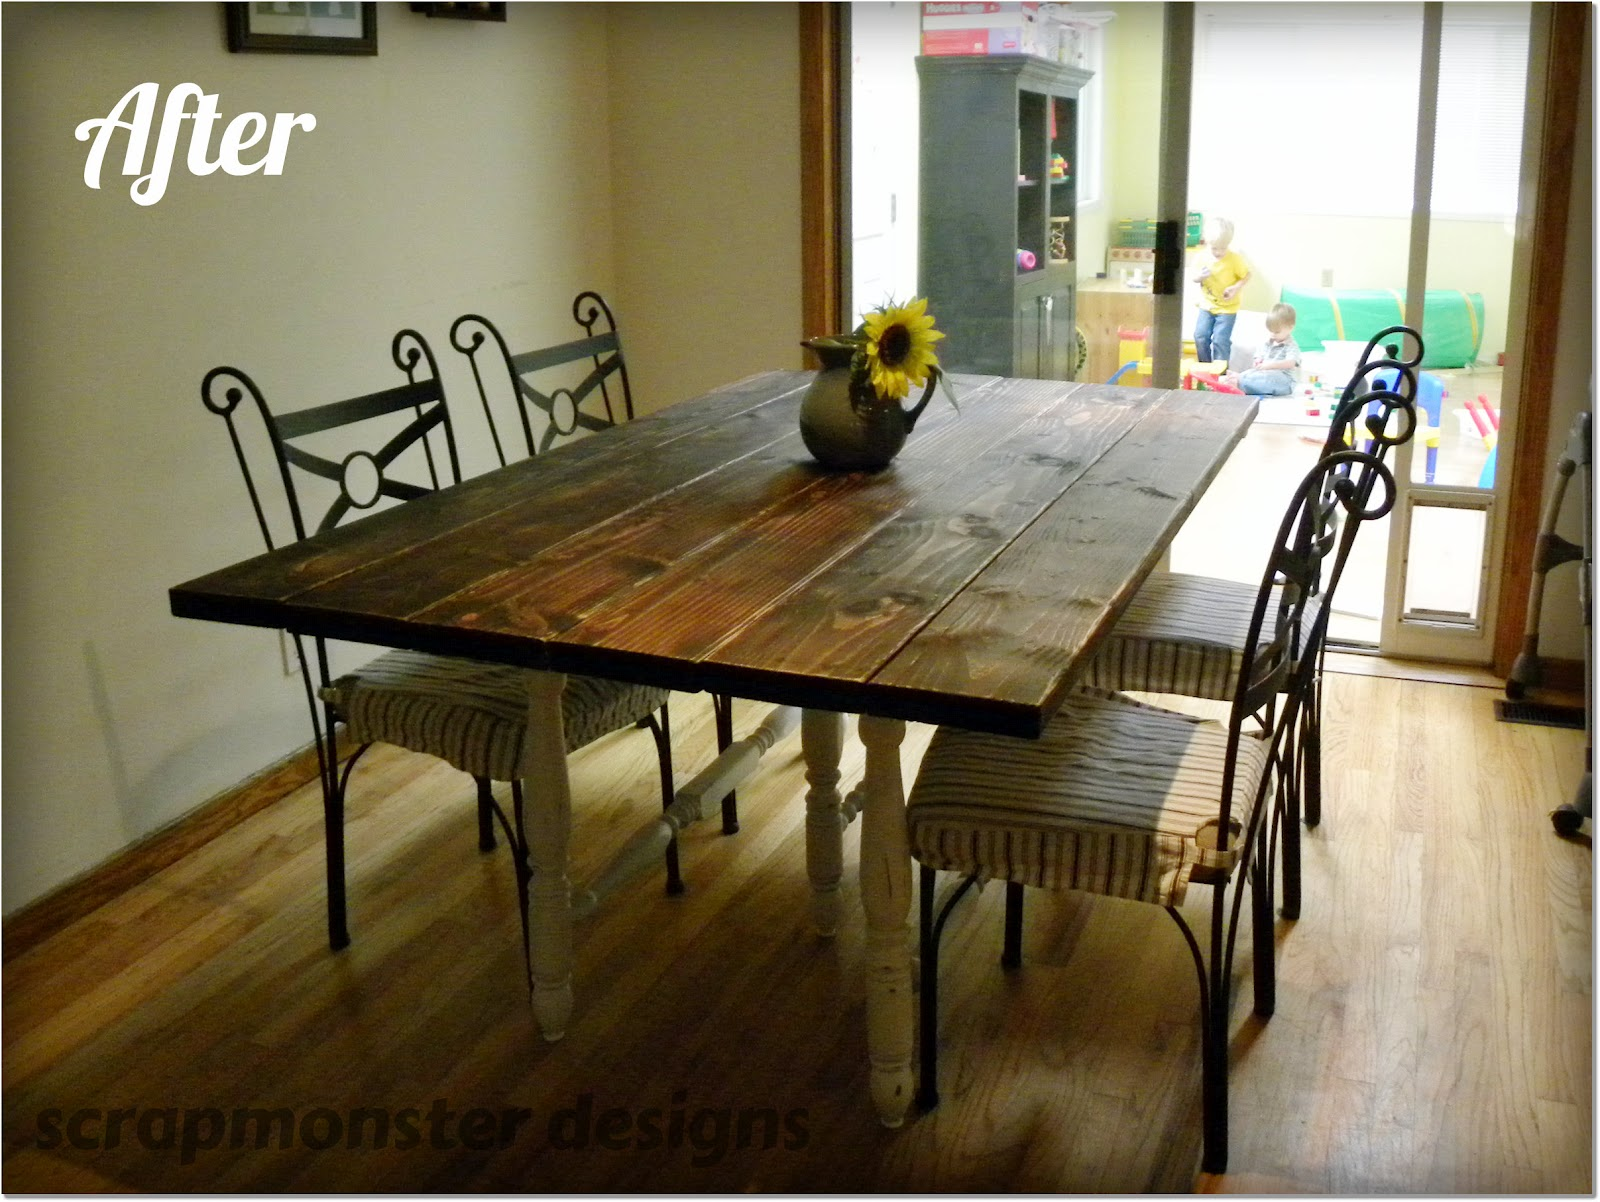 How to make a rustic dining table Photo - 1